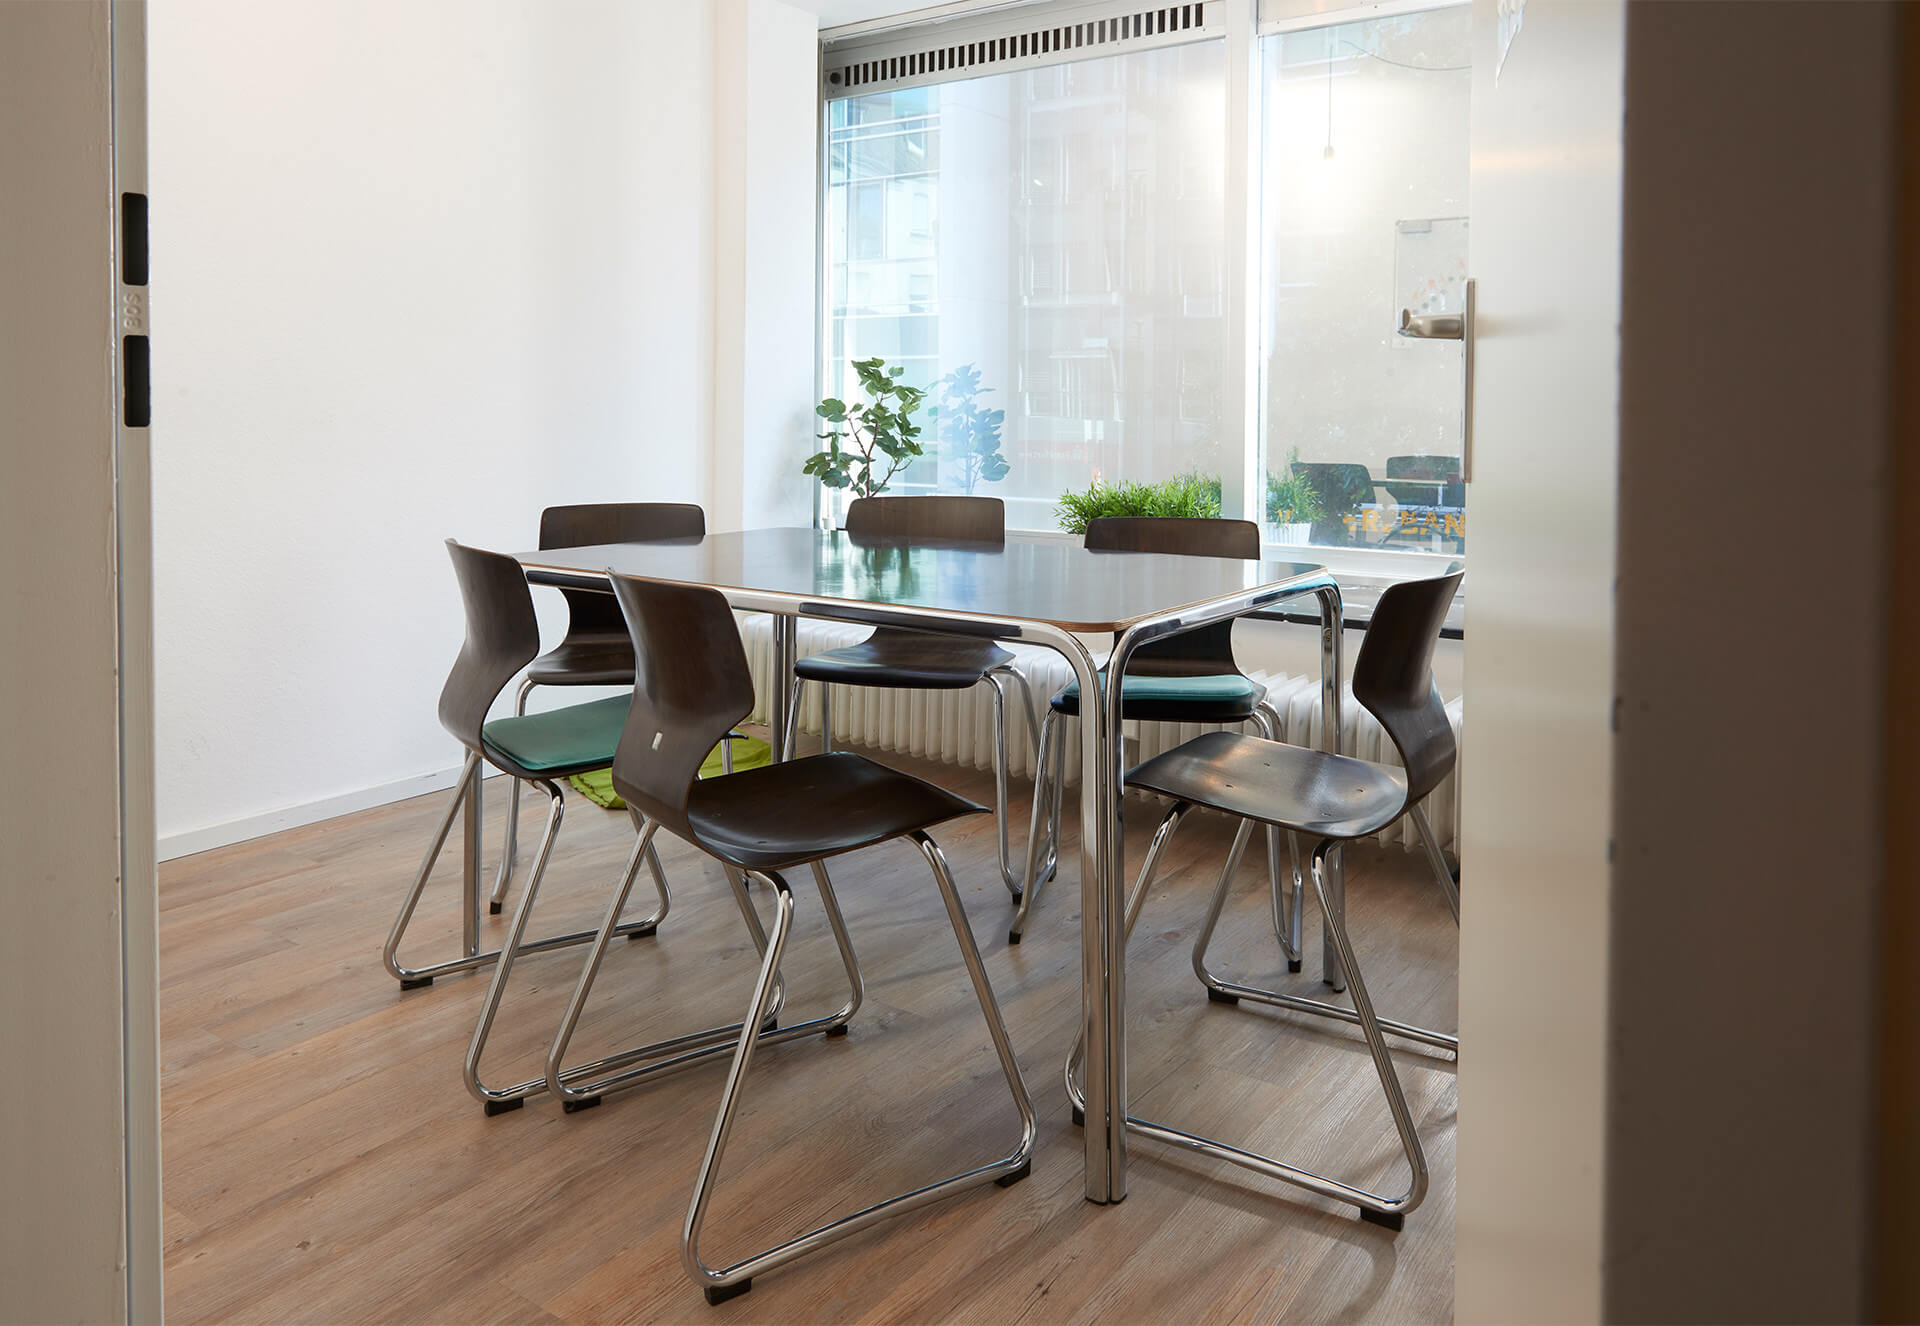 jaryd-fisher-meeting-room-empty